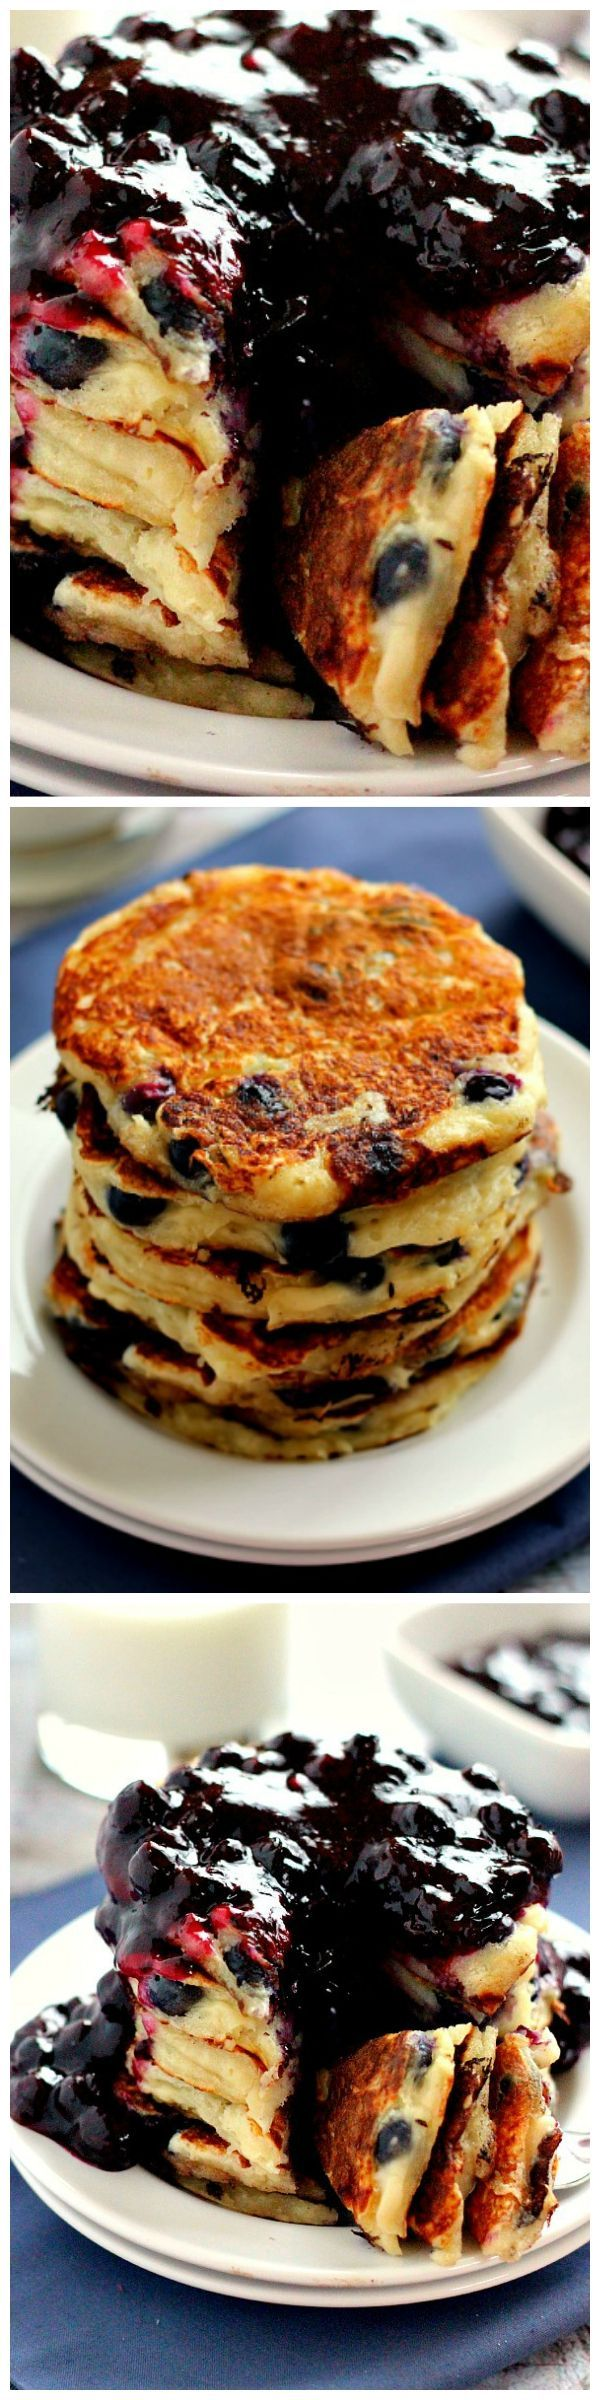 Blueberry Greek Yogurt Pancakes - These protein-packed Blueberry Greek Yogurt Pancakes are filled with plump blueberries, vanilla Greek yogurt and just the right amount of flavor. | @pumpkinnspice1 on WholeYum.com